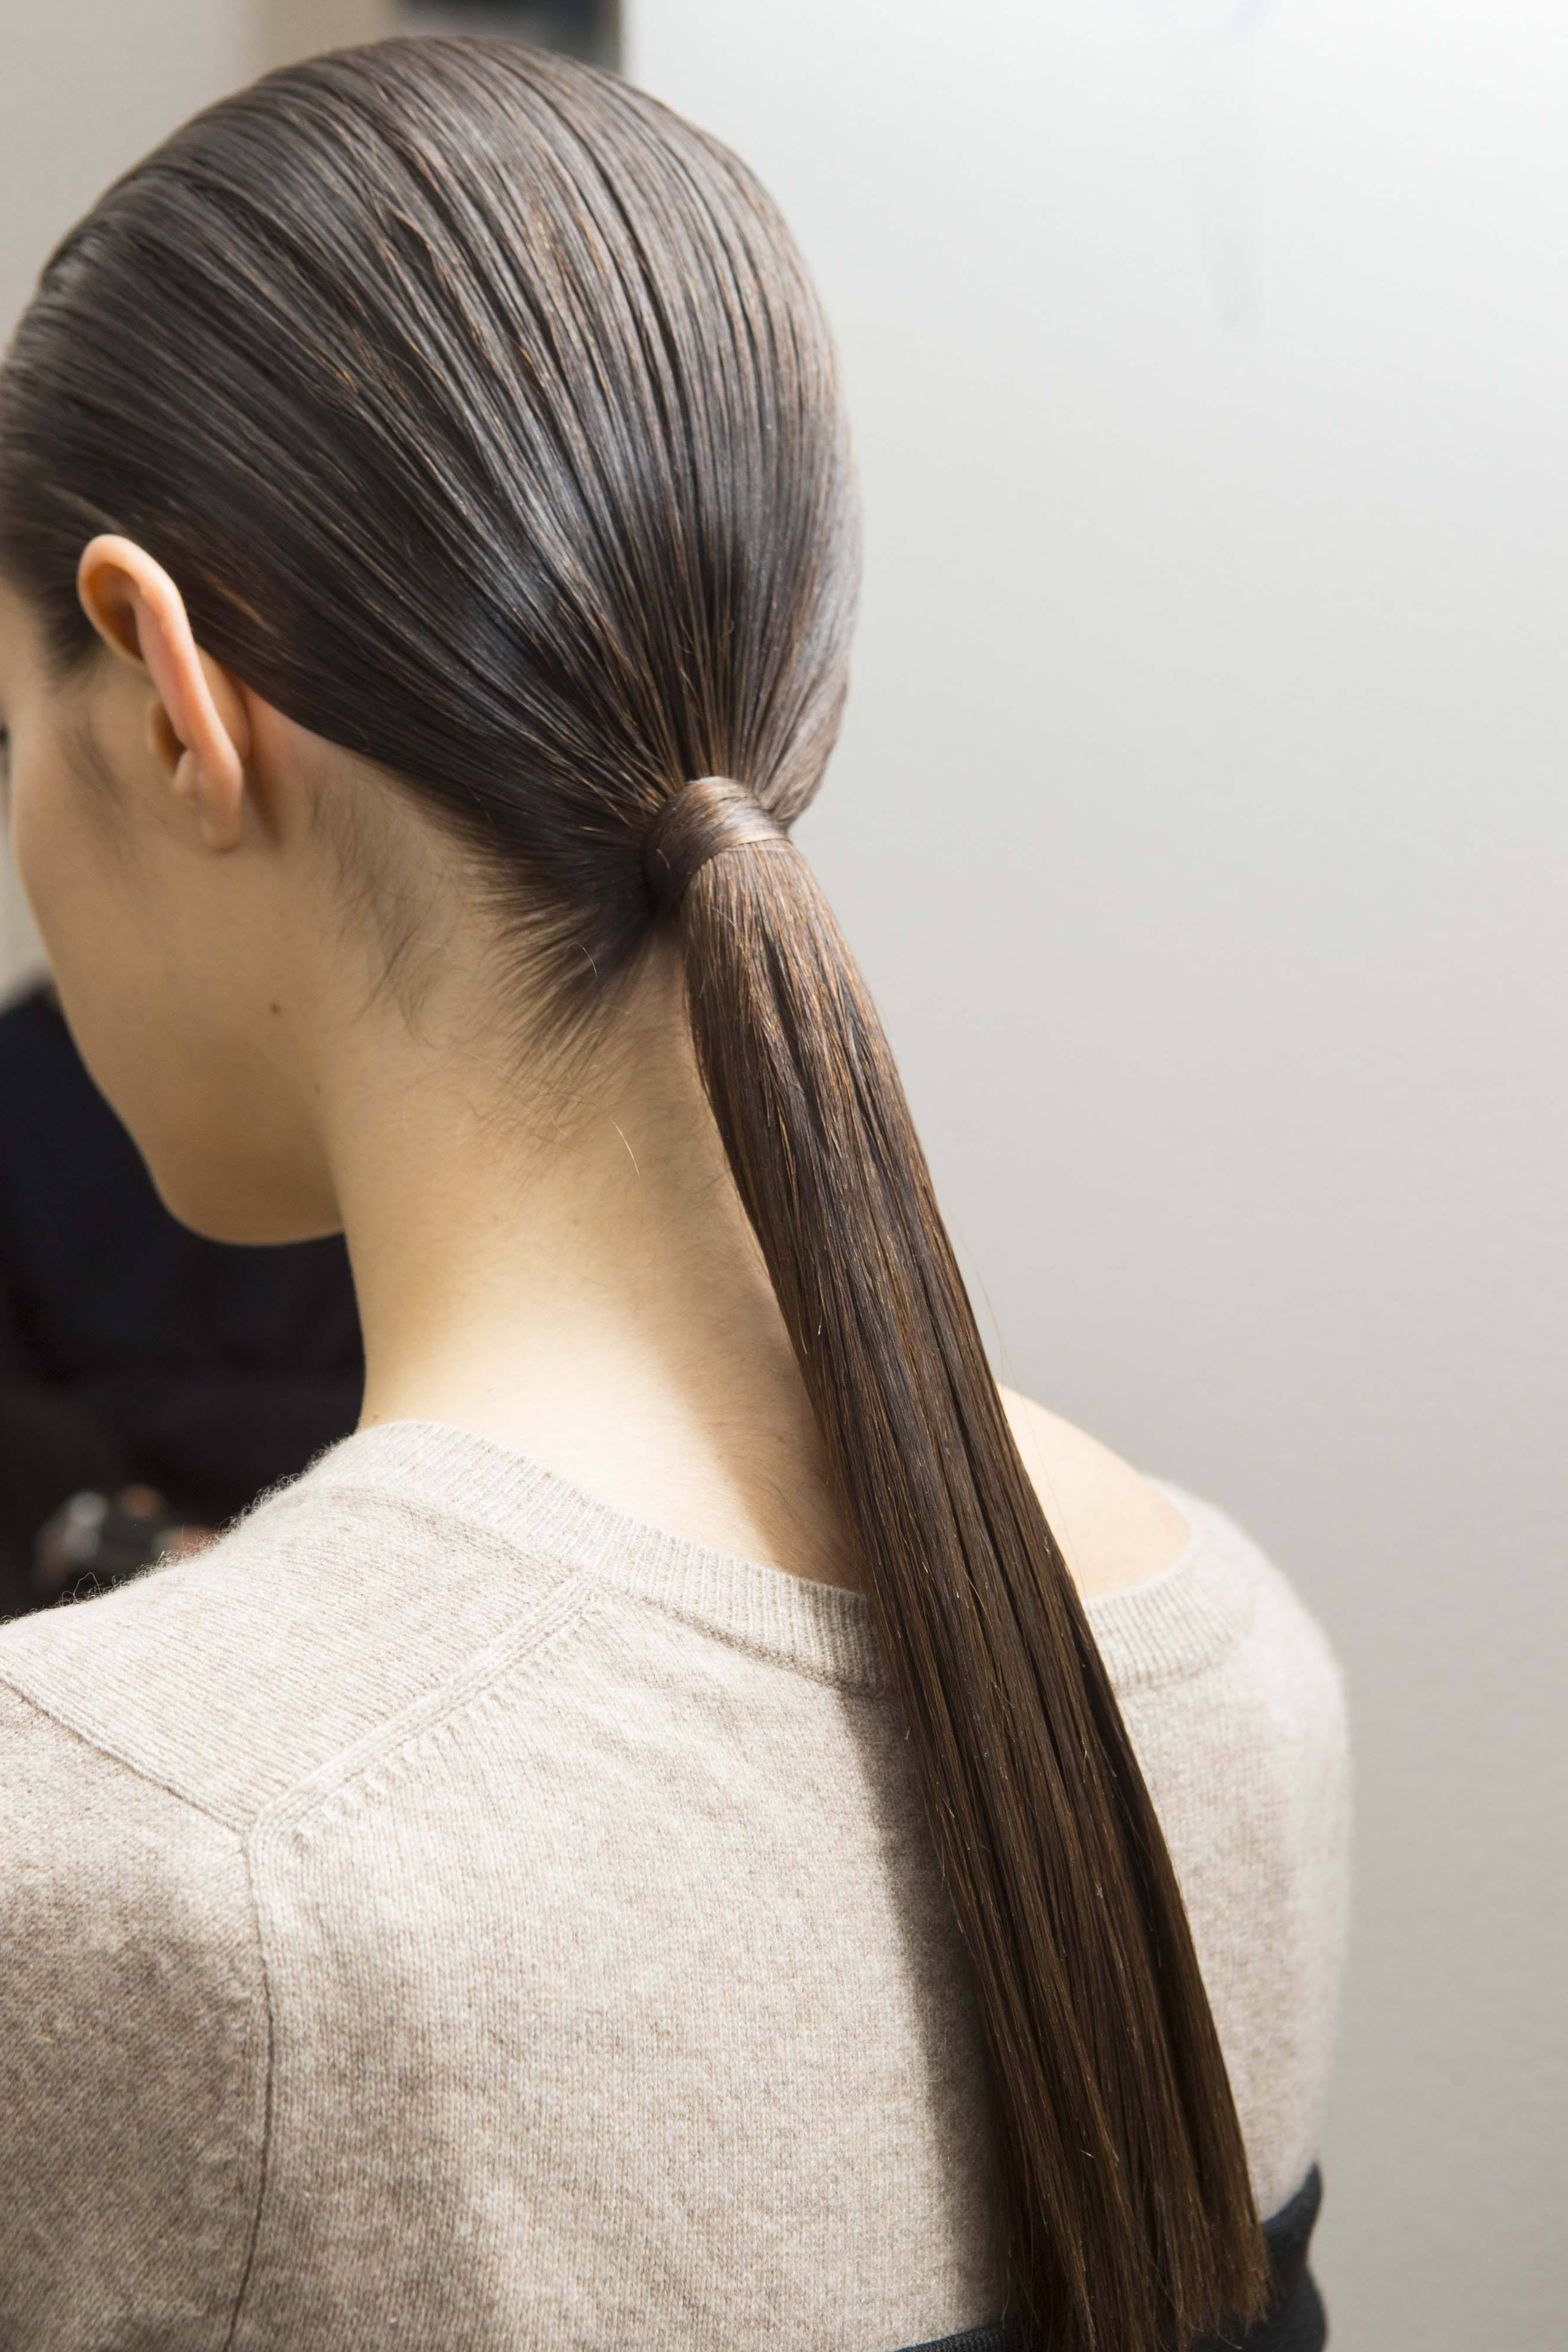 Famous Curly Pony Hairstyles For Ultra Long Hair Intended For Extra Long Hairstyles Trend: 3 Long Ponytails To Try (View 8 of 20)